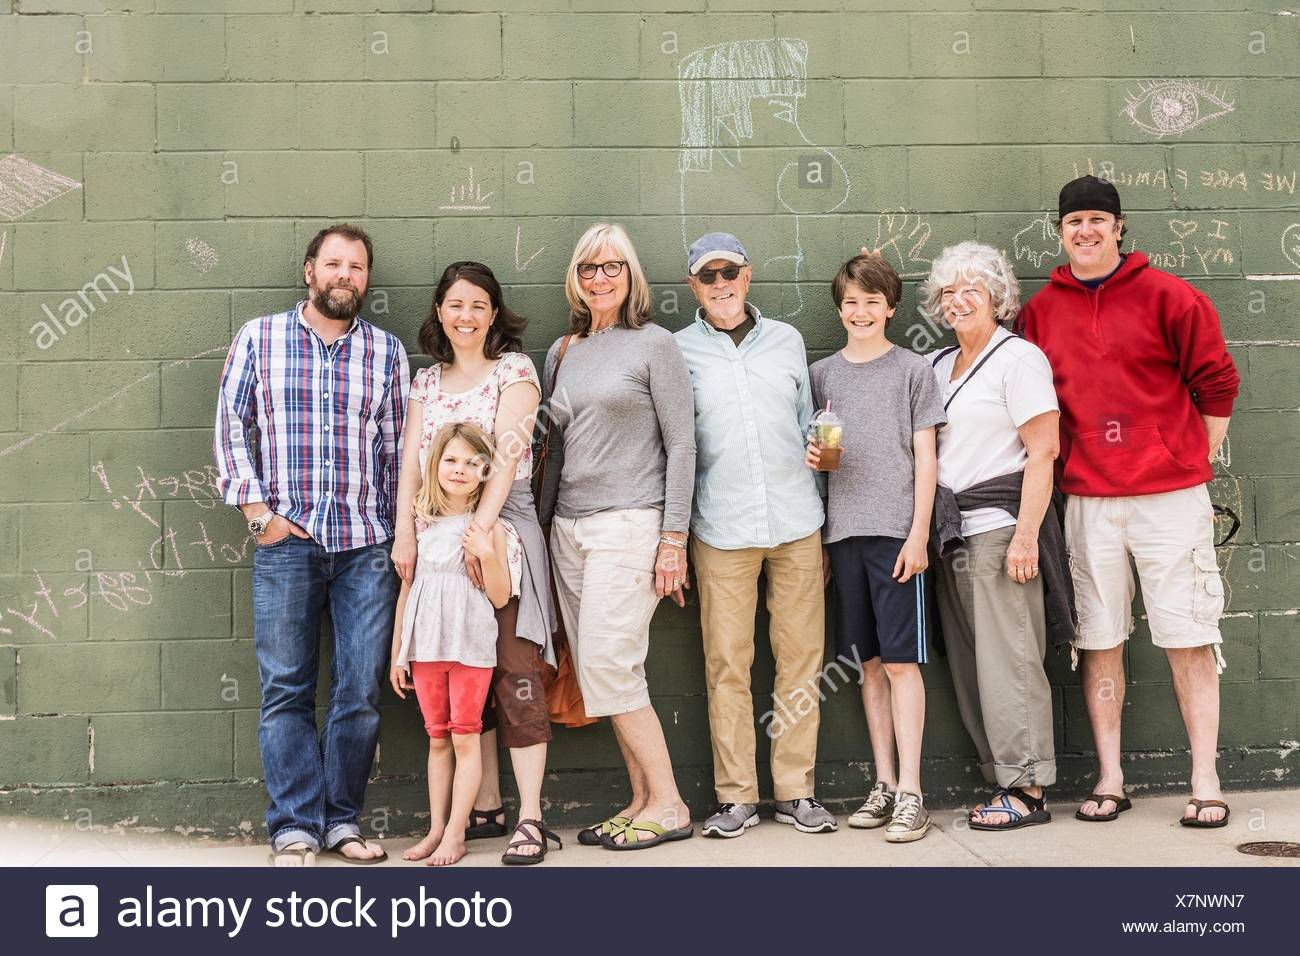 Three generation family in front of wall, portrait - Stock Image